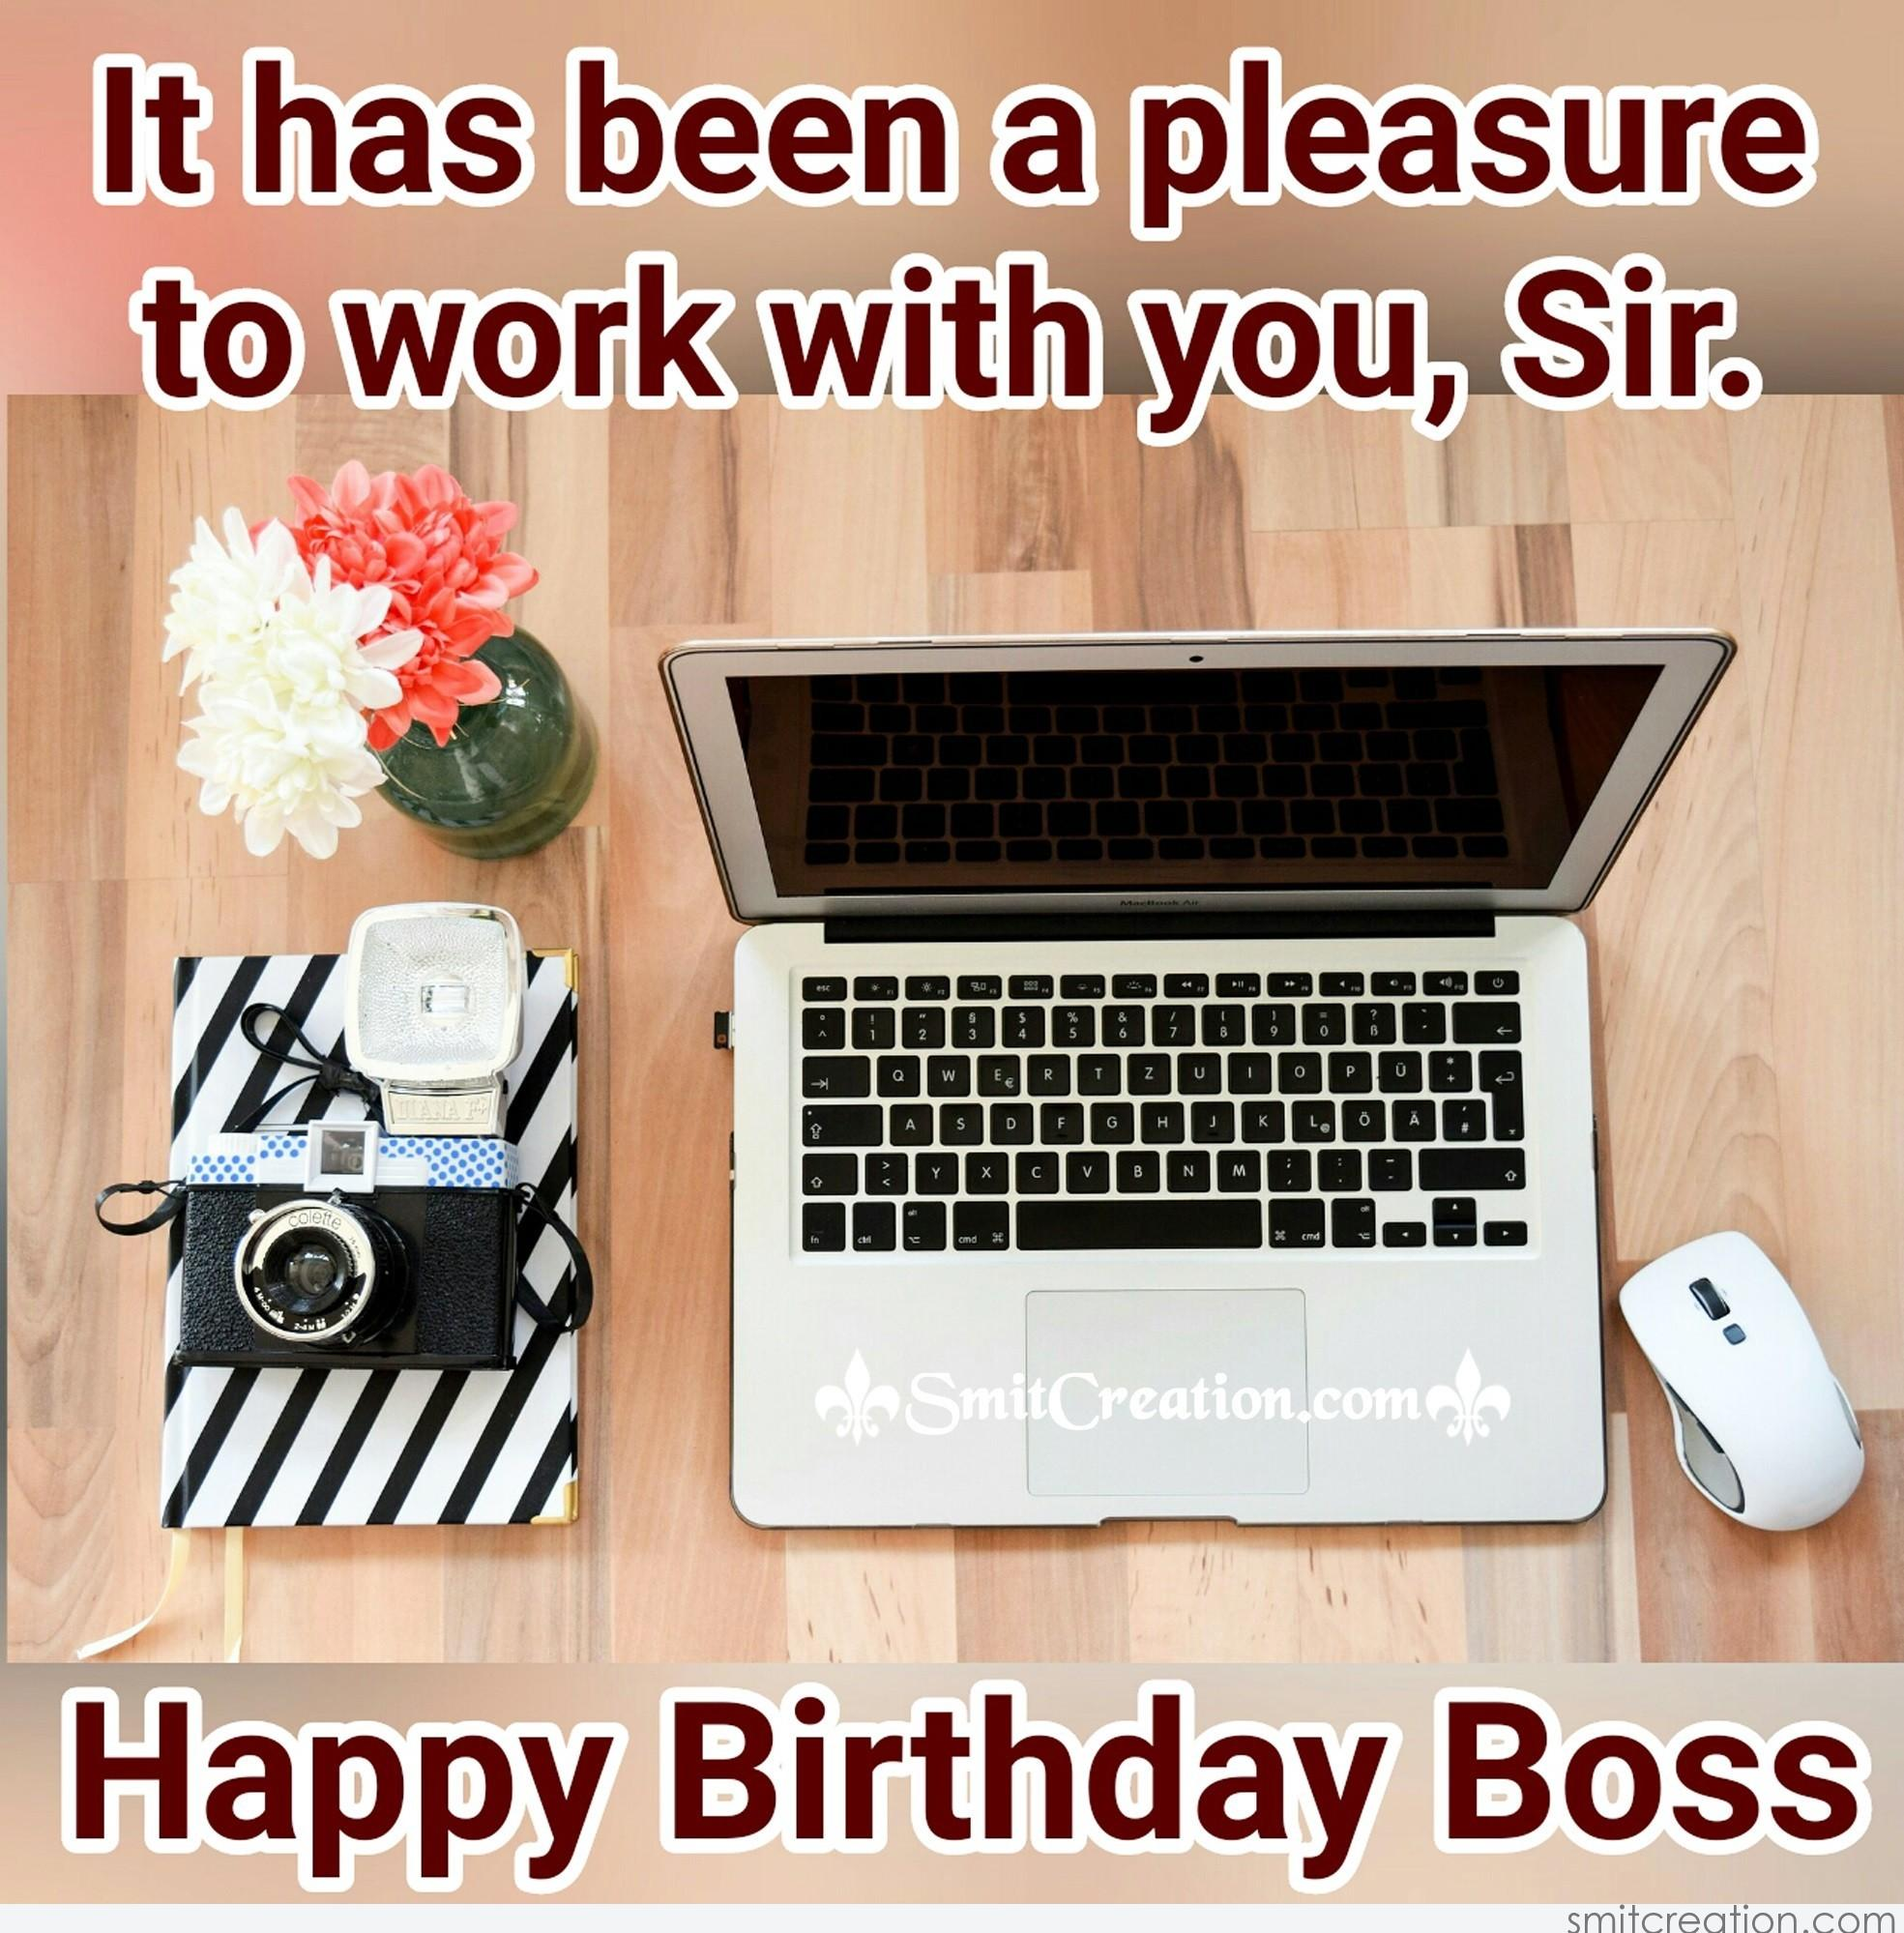 Birthday Wishes For Boss Pictures And Graphics Smitcreation